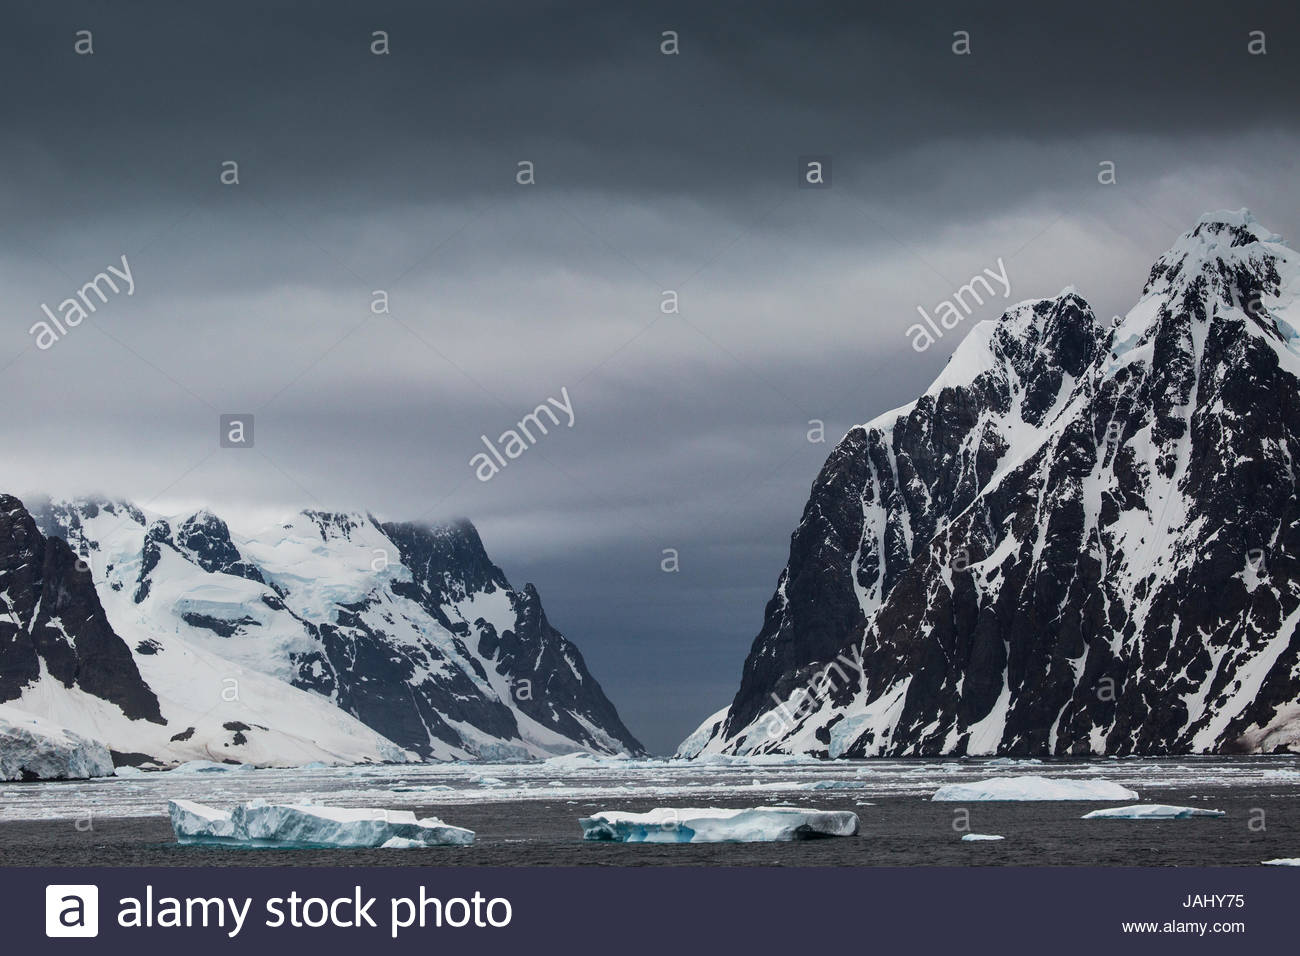 The southbound entry into Lemaire Channel, with the Antarctic mainland on the left. - Stock Image